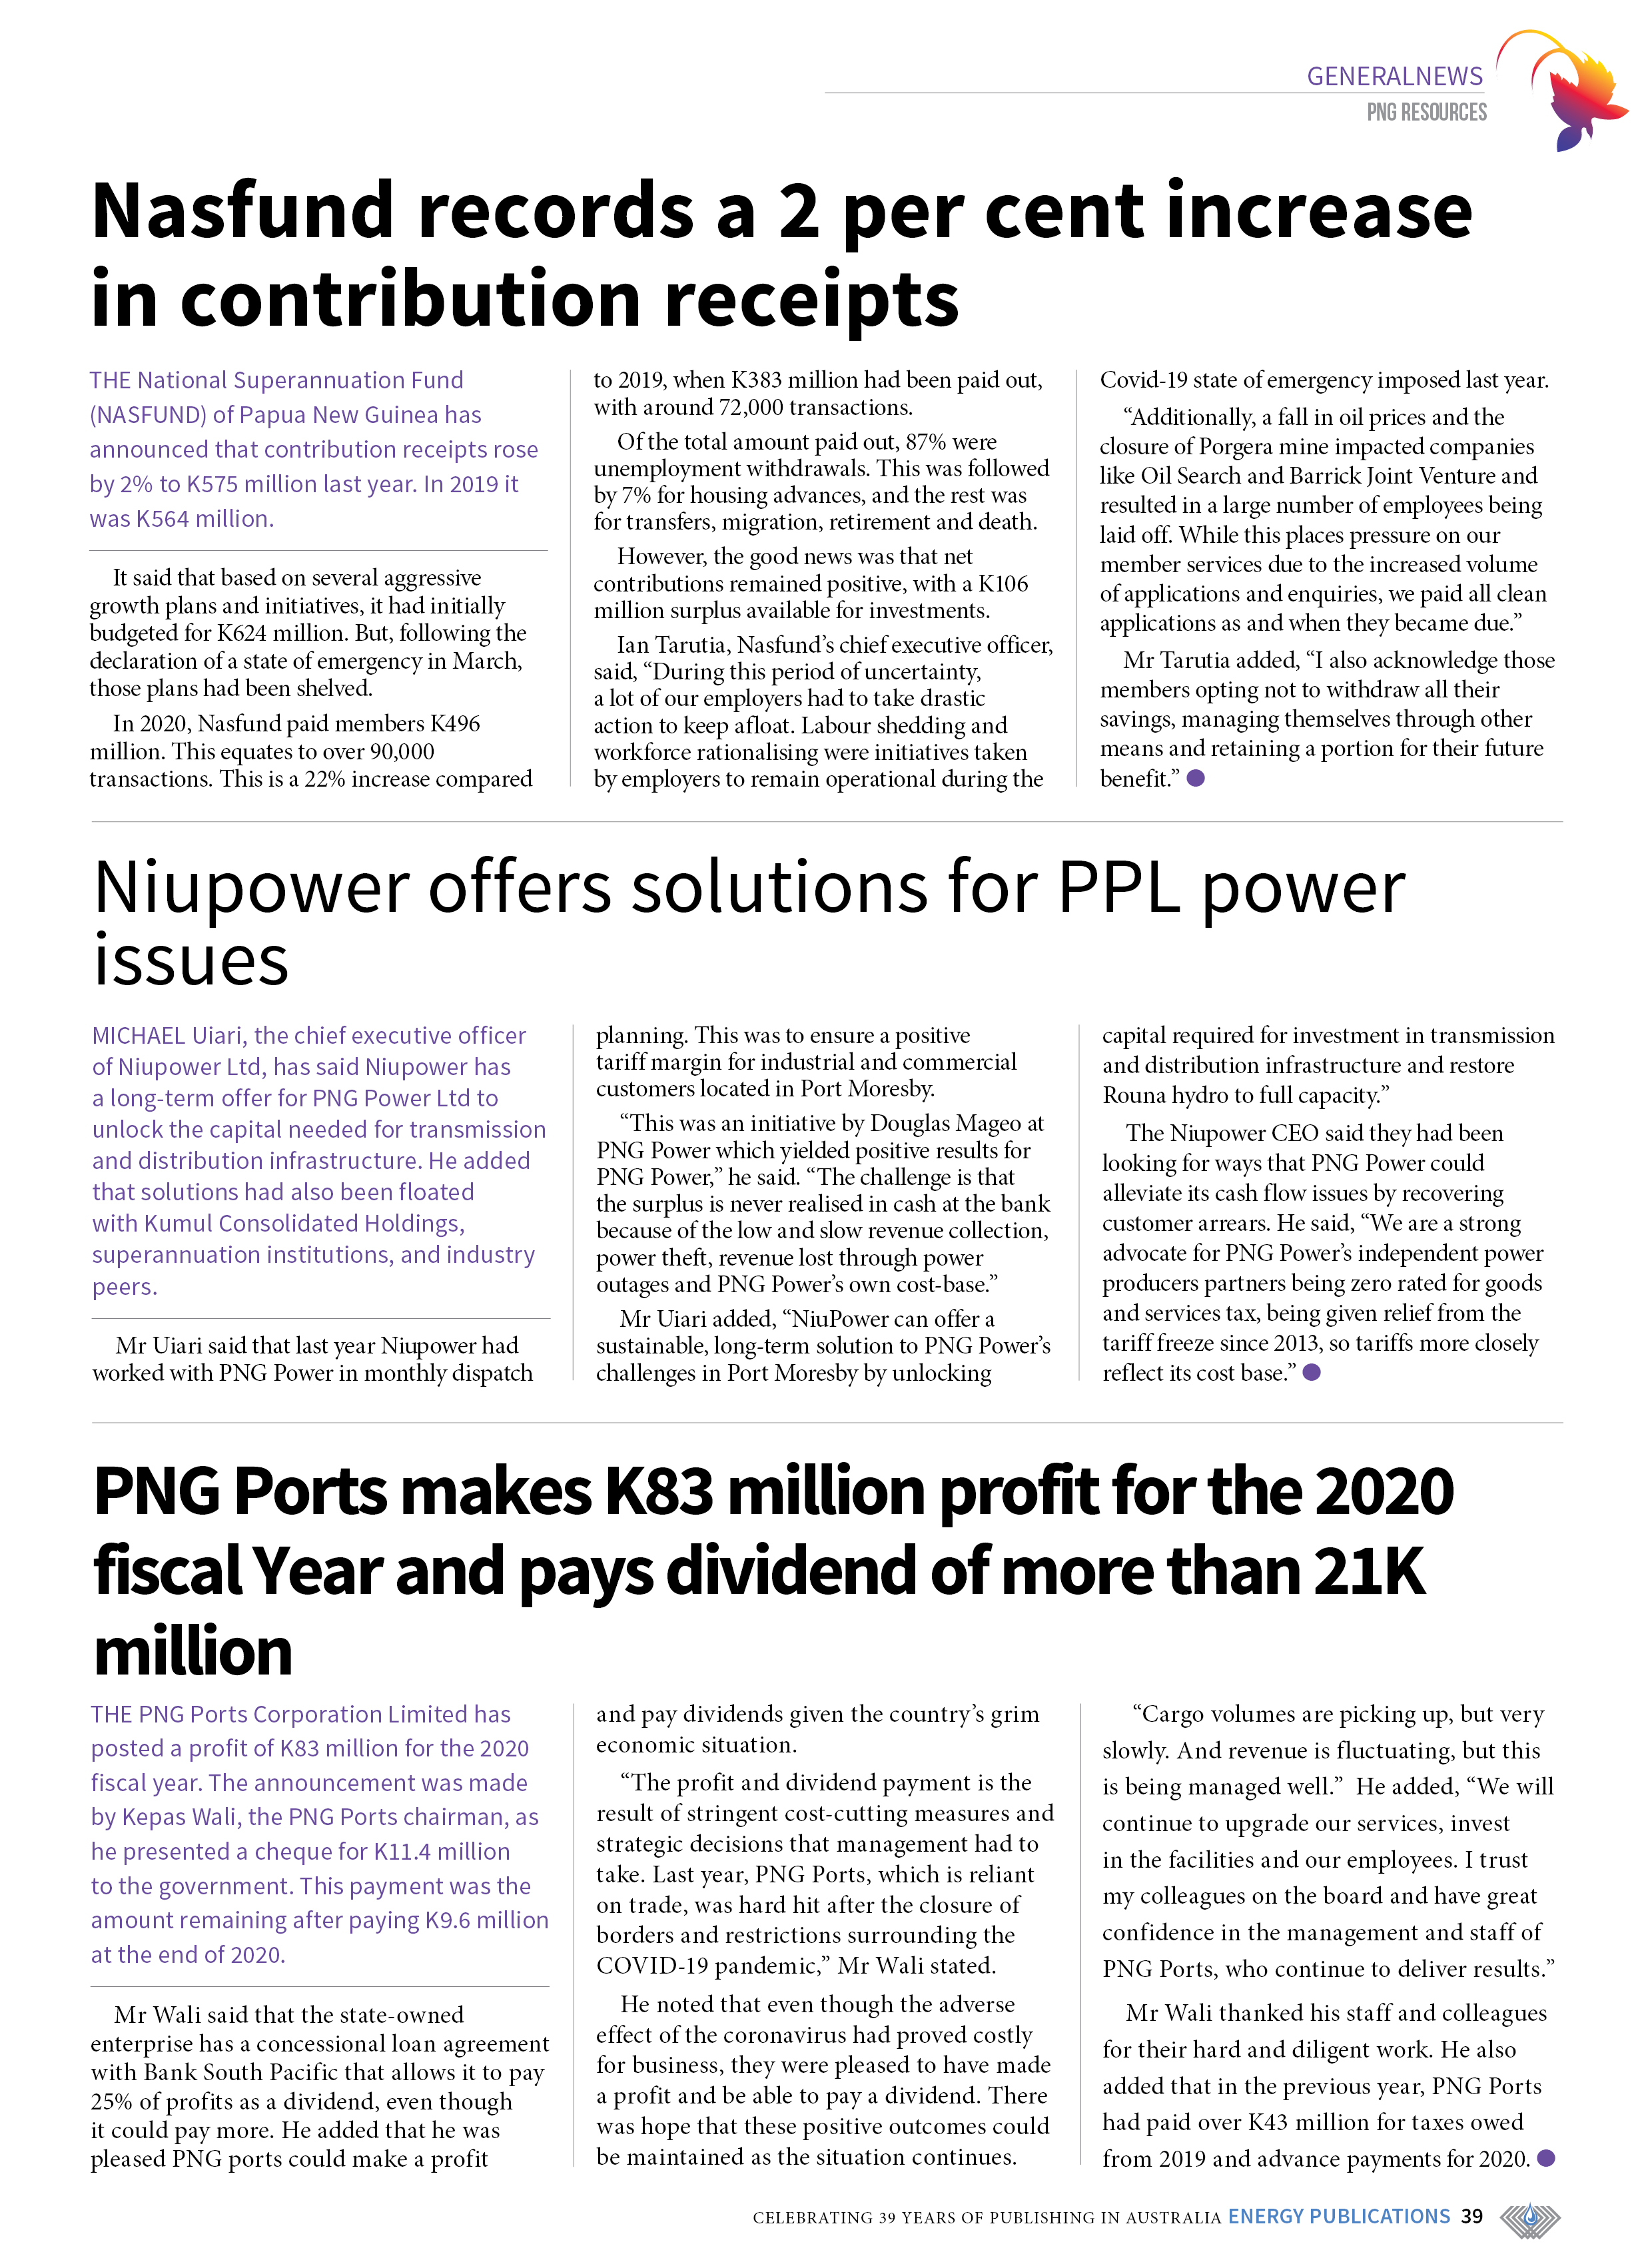 PNG Resources Q1 2021 – Page 41